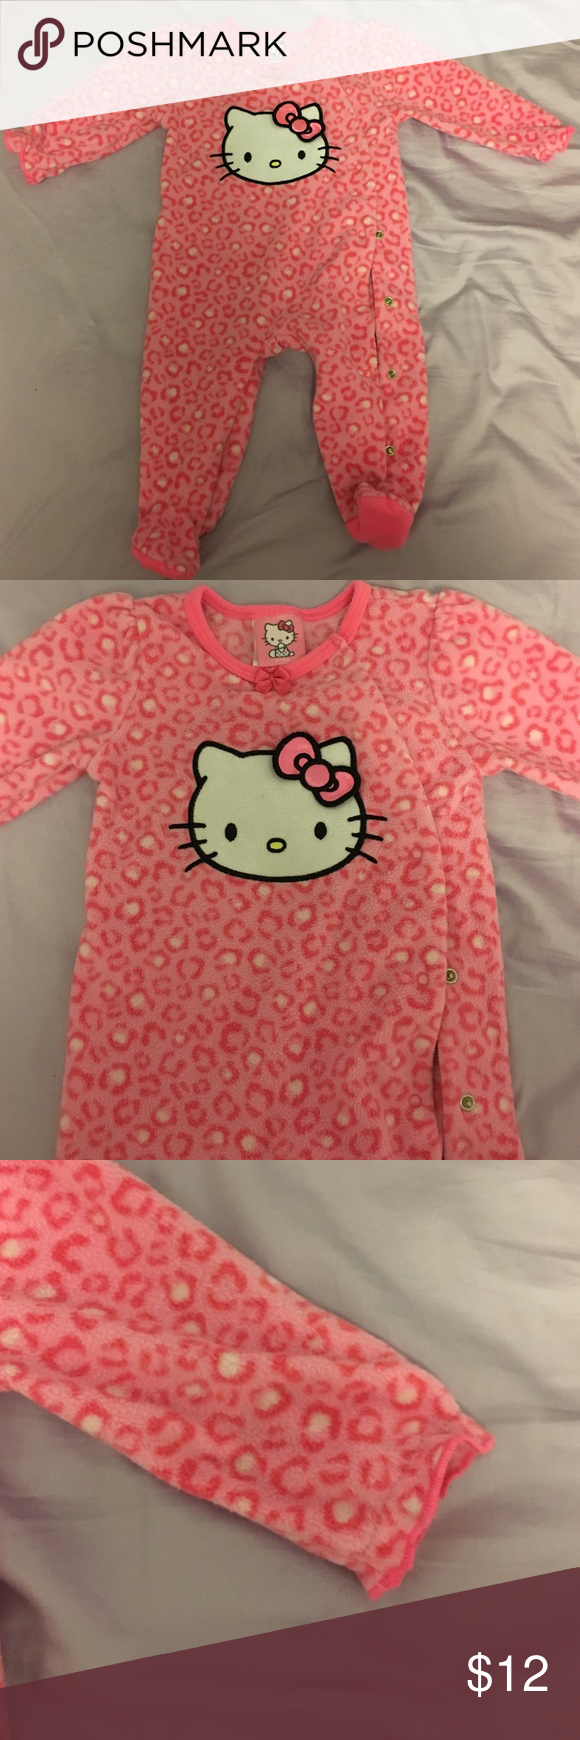 Pink Hello Kitty sleeper Hello Kitty fleece sleeper for baby girl. Used but super cute and very warm. Buttons on the side. Hello Kitty Pajamas